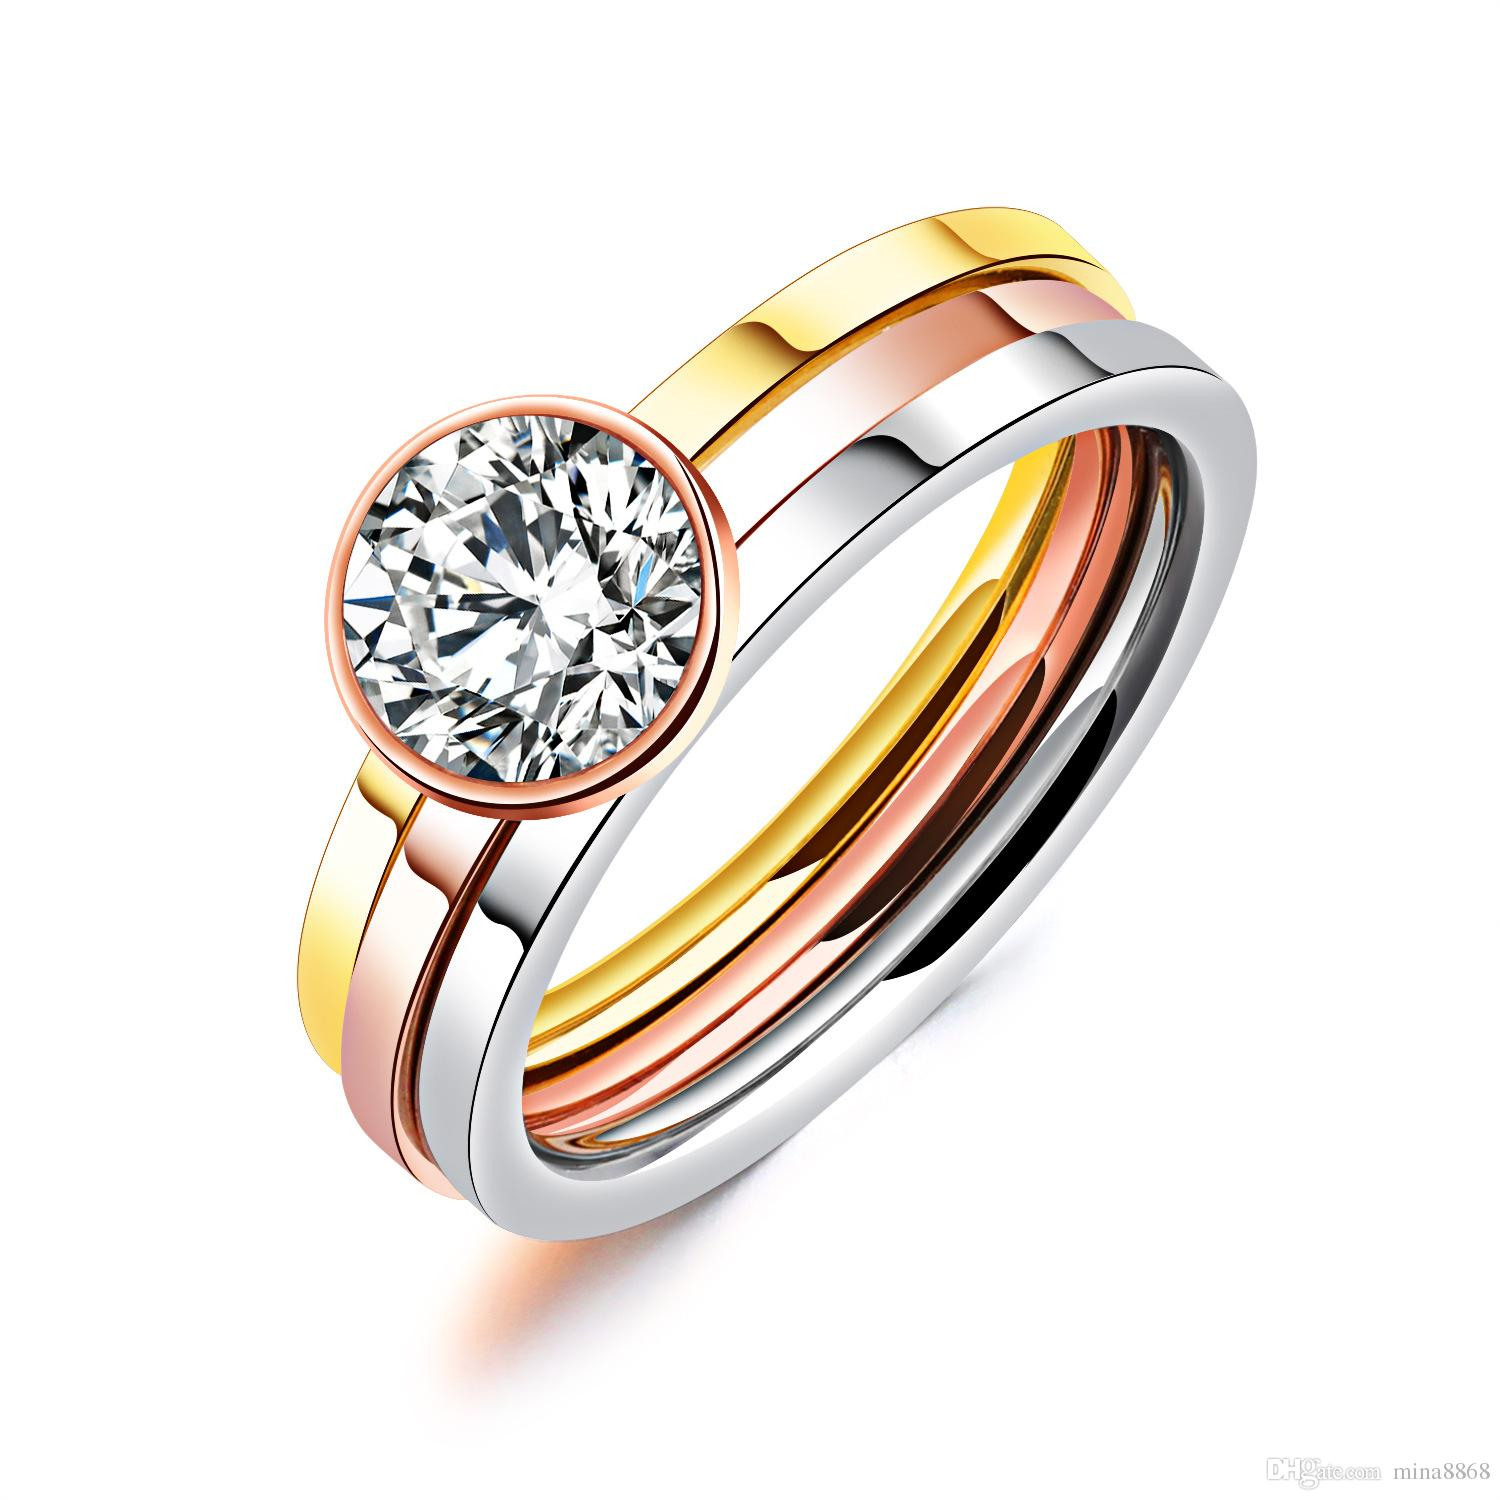 Womens Jewelry Bridal Ring Sets Rose Gold Slliver Gold Colors 3 In 1 Rings  Set For Woman With Zircone Luxurious Women Wedding Rings UK 2019 From  Mina8868 89c0706b95